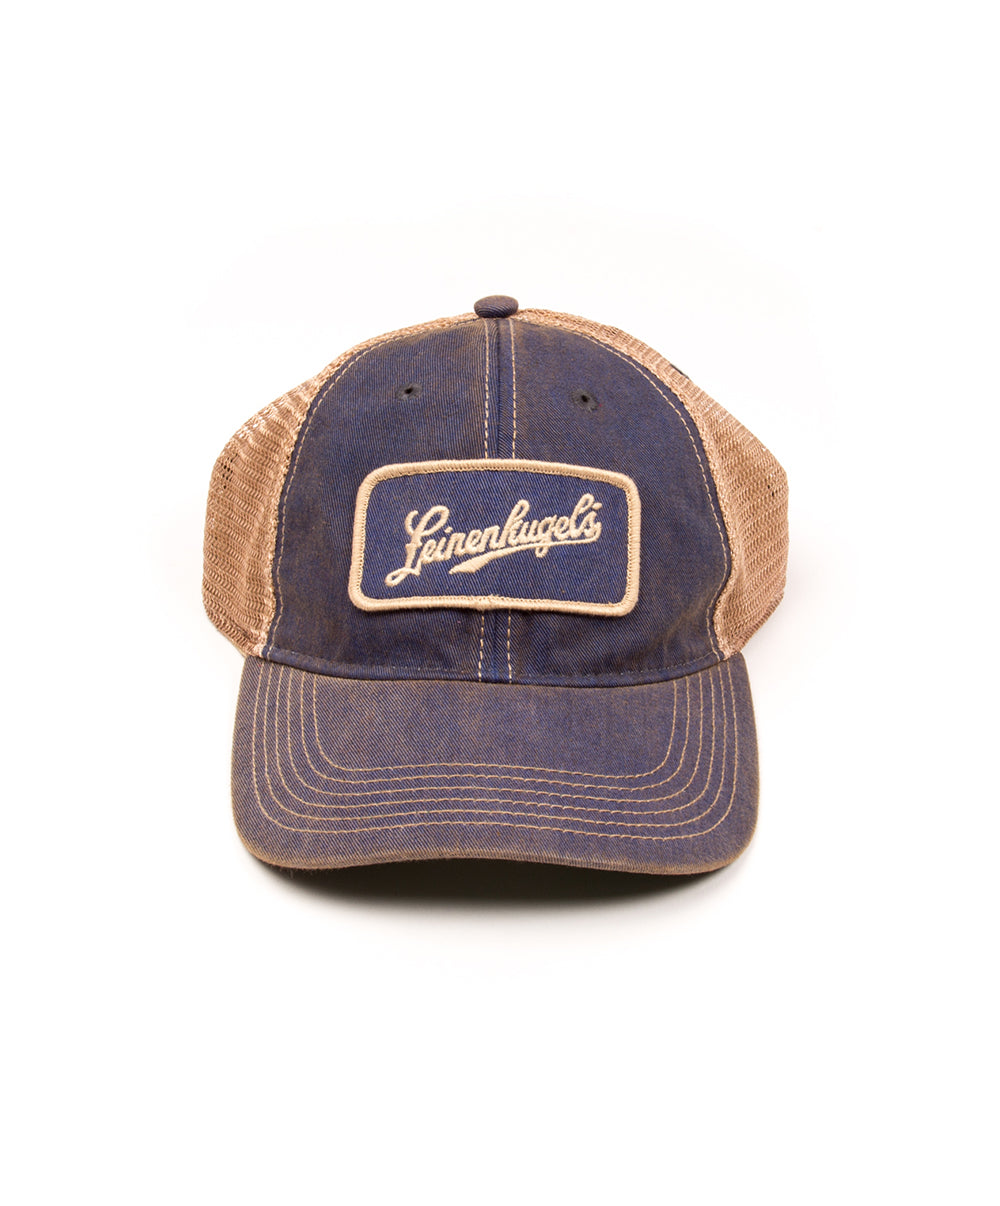 TRUCKER FAVORITE BLUE BALL CAP